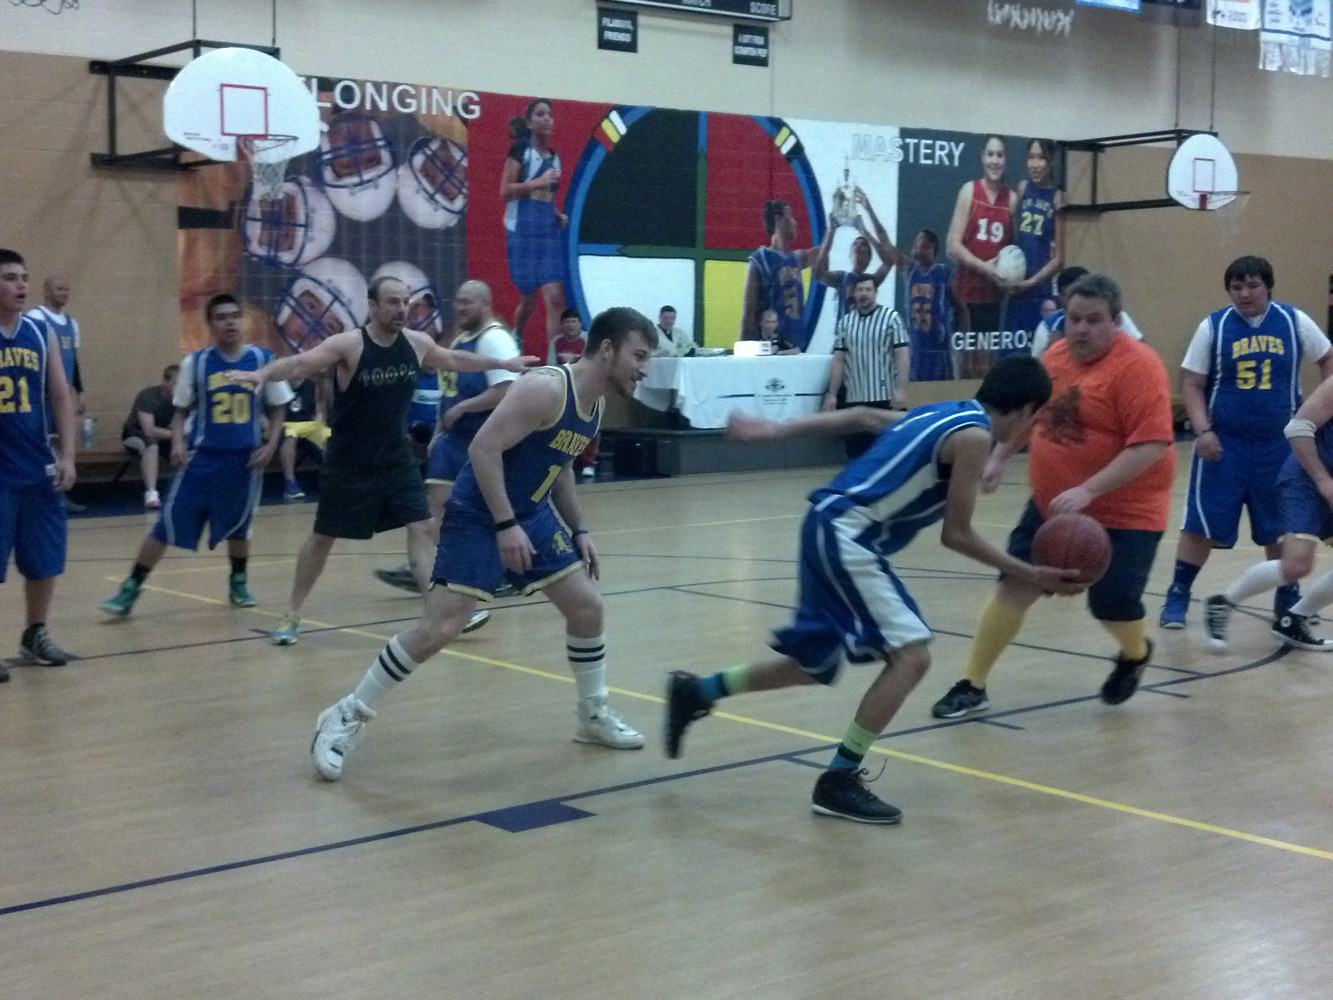 St. Joseph's eighth grade boys matched up against staff for a basketball game.